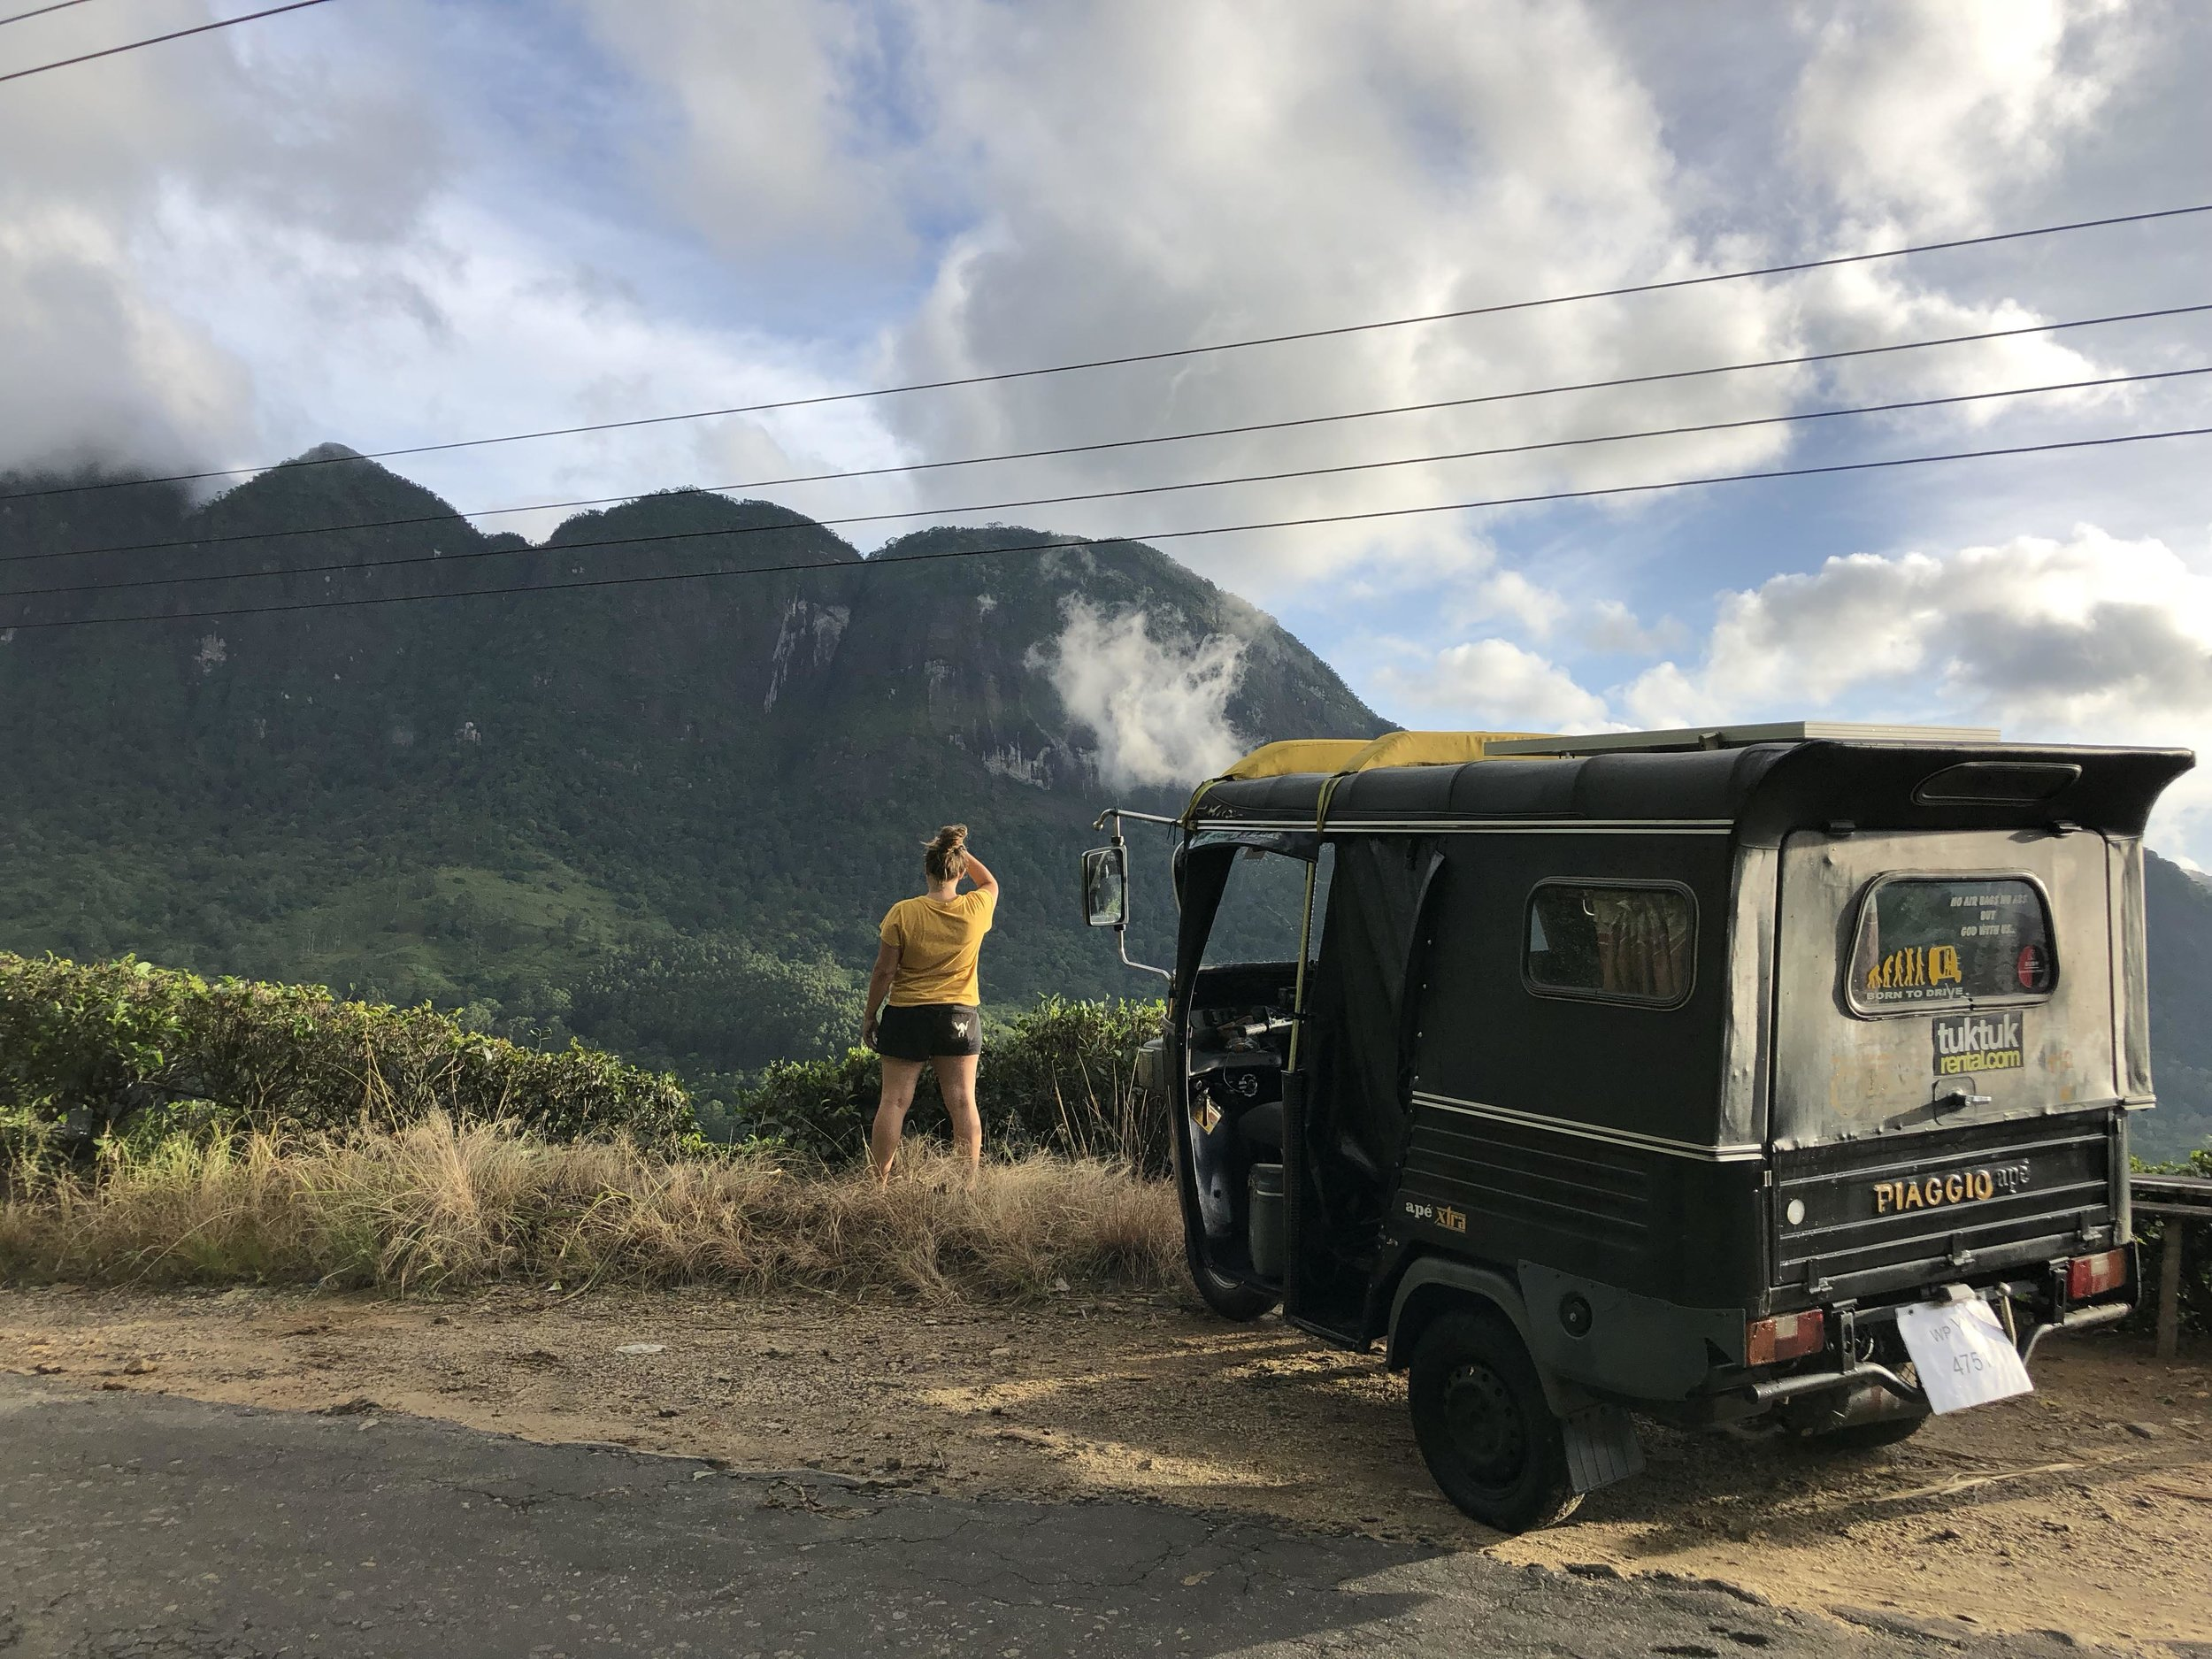 The Backstory: How I ended up in Sri Lanka. - In June 2019 I traveled to Sri Lanka and drove a TukTuk around the Island to explore the culture and natural beauty. When I got back from Sri Lanka I had a lot of feedback about the TukTuks and I sent the company a 3 page document describing my experience. The feedback was so greatly appreciated that they asked me to come work in Sri Lanka with them to improve the user experience, so I packed my bags and went to Sri Lanka for 4 weeks.